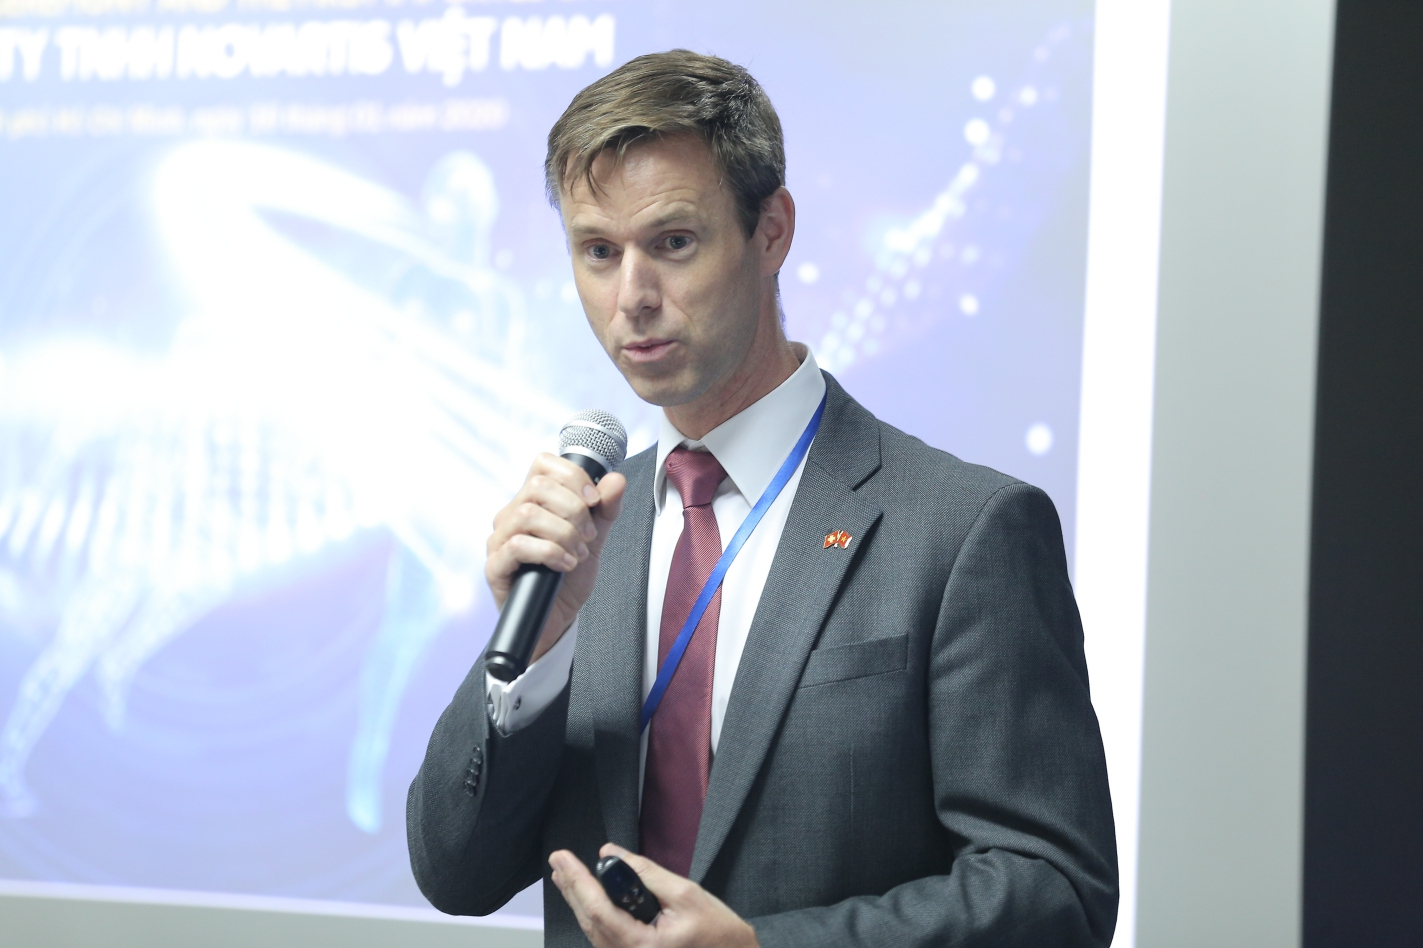 Roeland Roelofs, Novartis country president in Vietnam, speaks at the inauguration ceremony in Ho Chi Minh City on January 16, 2020.